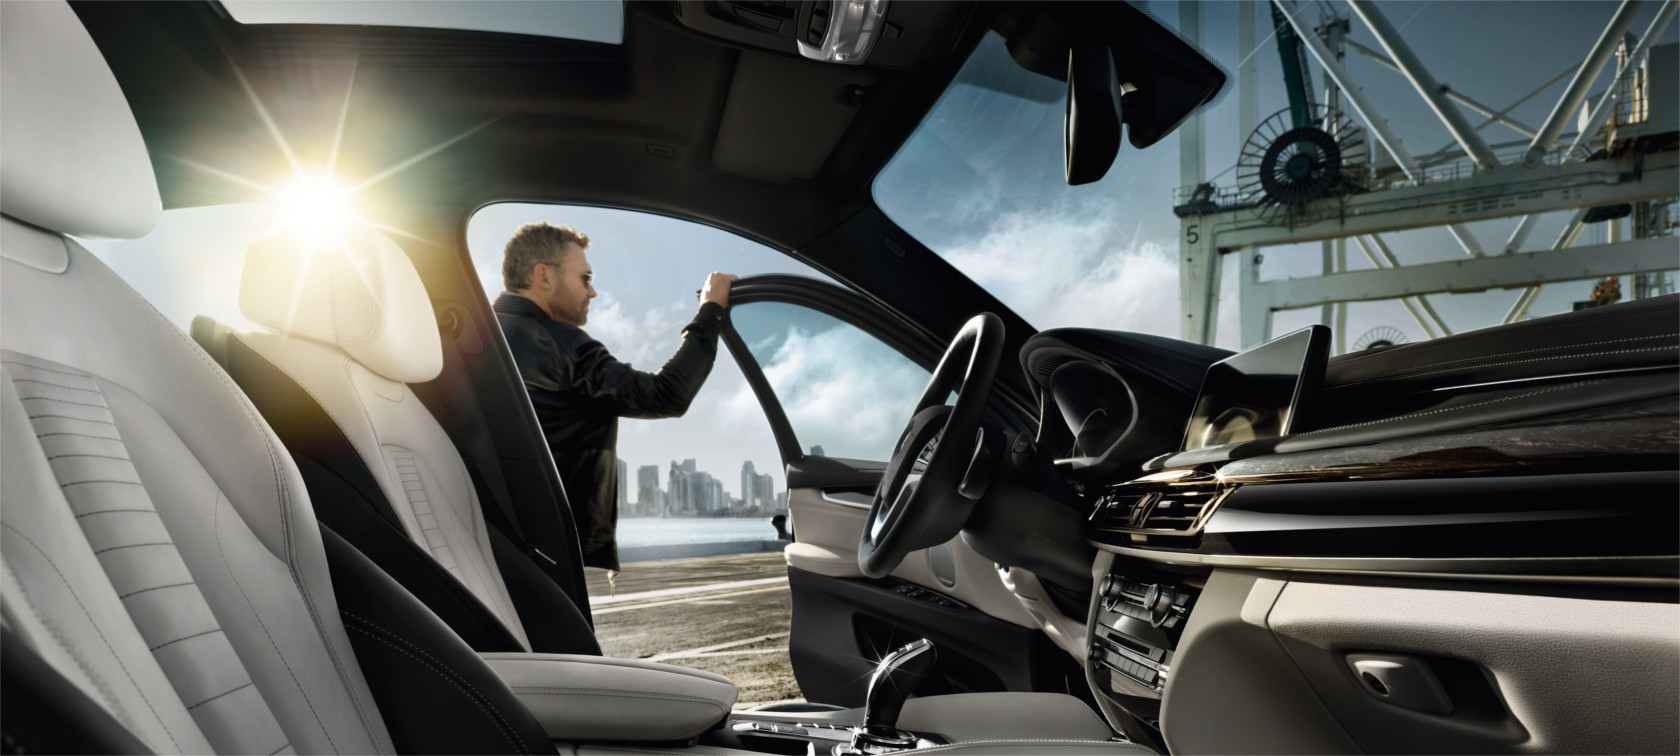 BMW X Series X6: black and white sports car interior with sunlight.